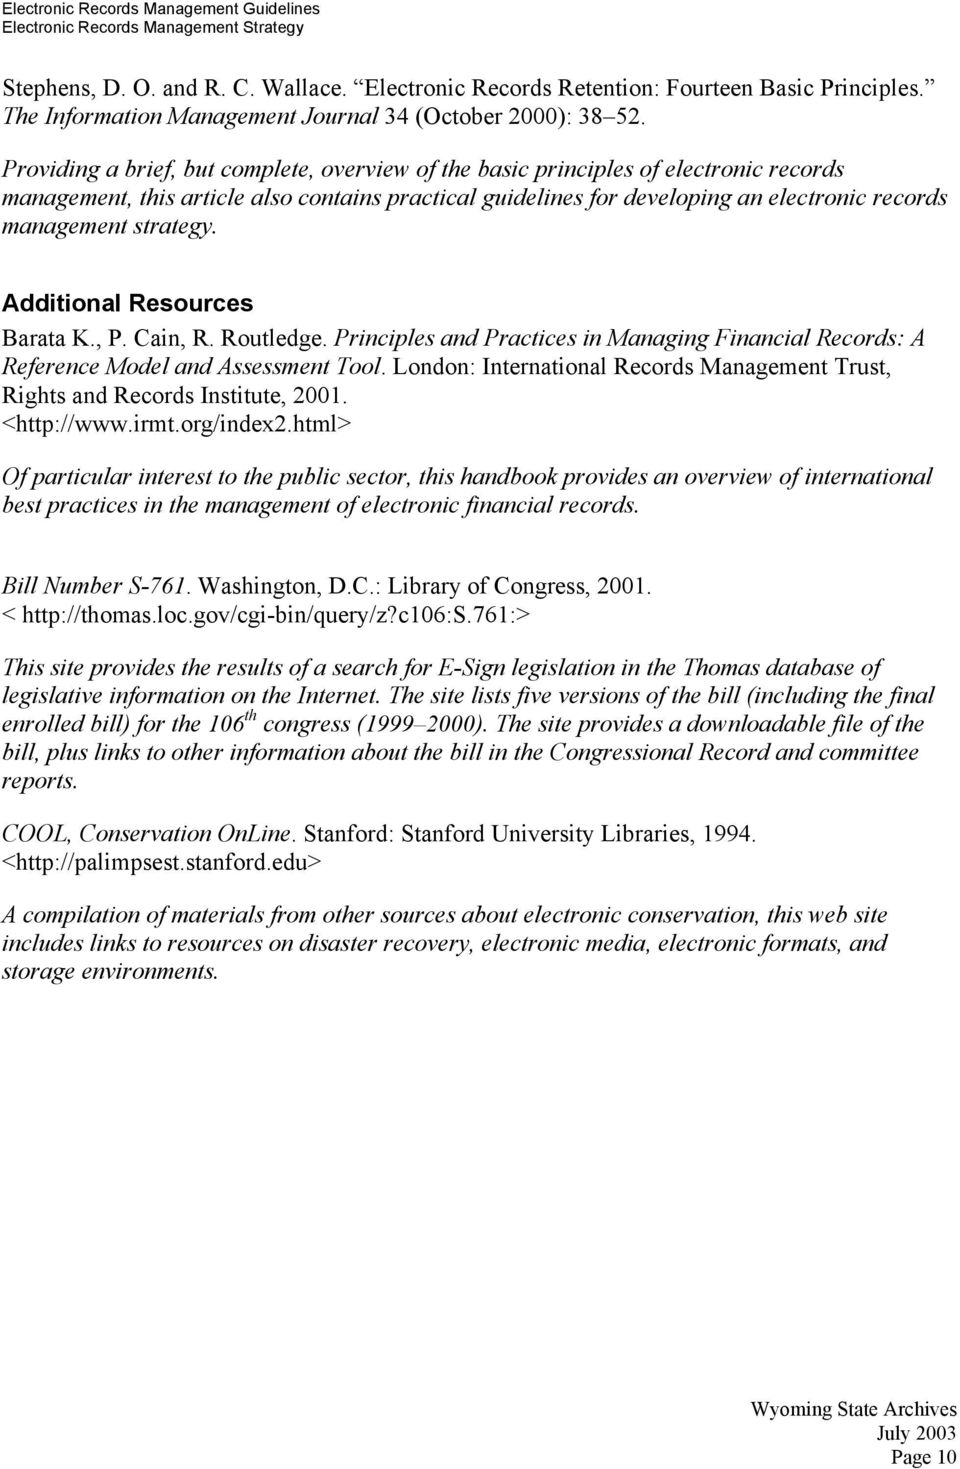 strategy. Additional Resources Barata K., P. Cain, R. Routledge. Principles and Practices in Managing Financial Records: A Reference Model and Assessment Tool.